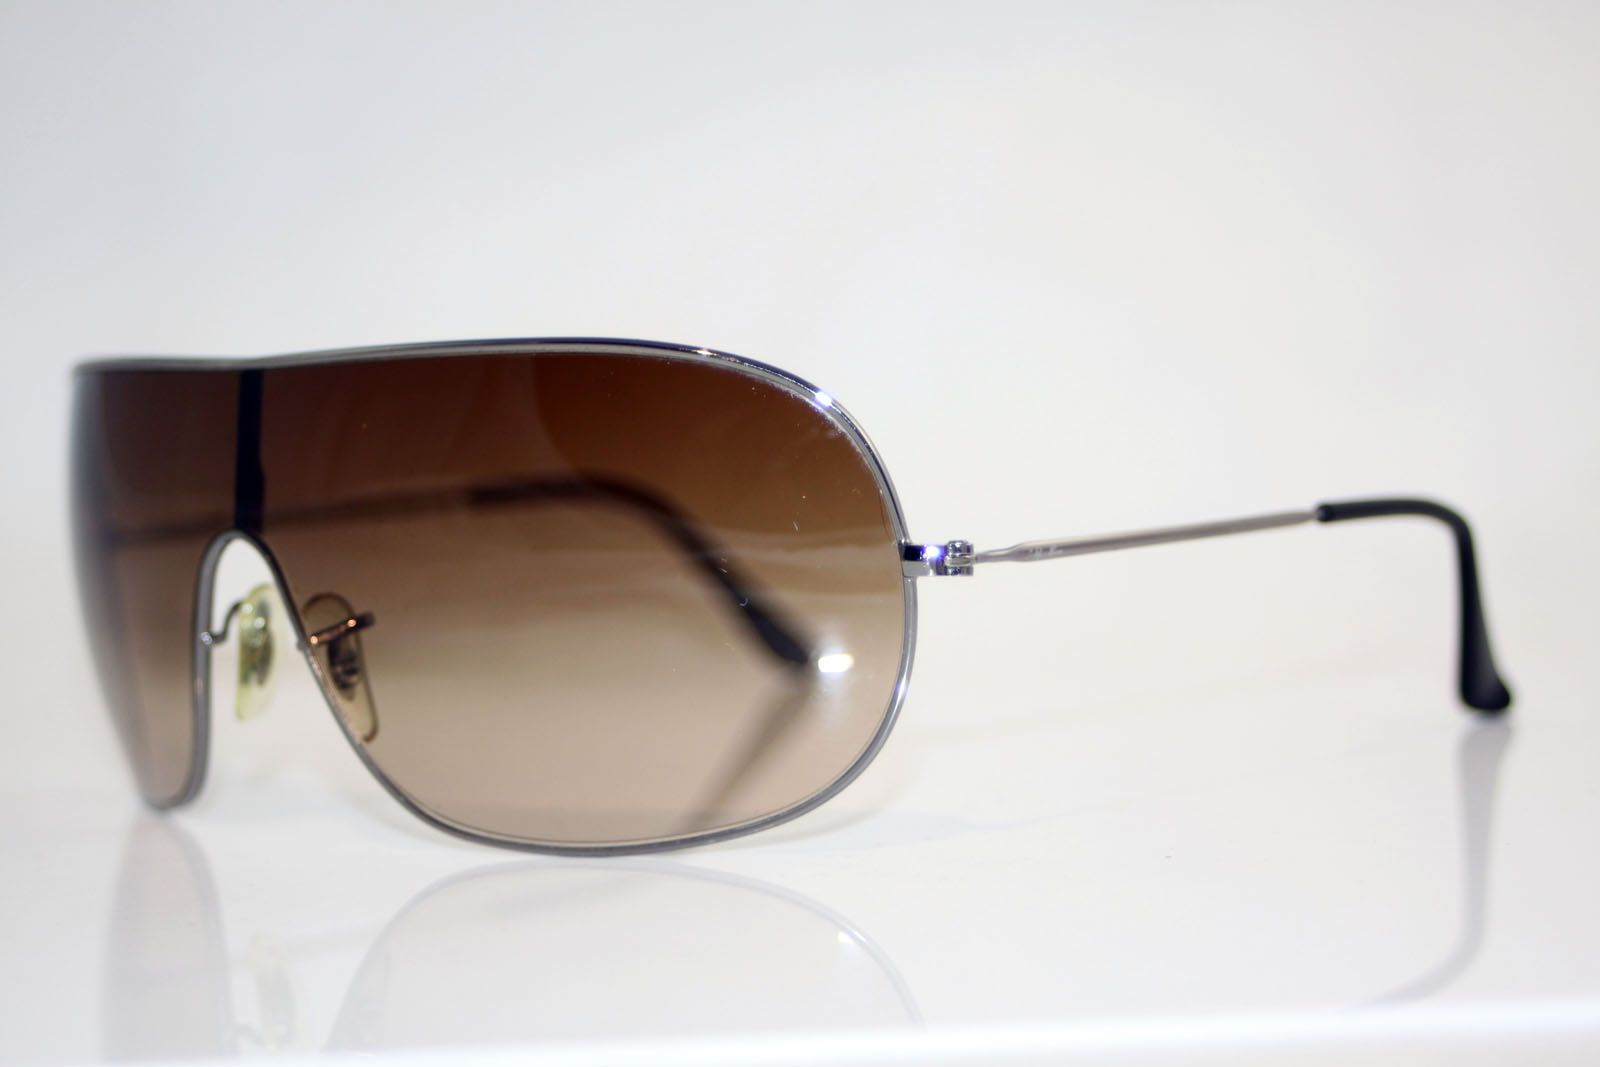 7dea4aca336 Ray Ban Rb3387 Aviator Wrap Sunglasses 67mm « Heritage Malta